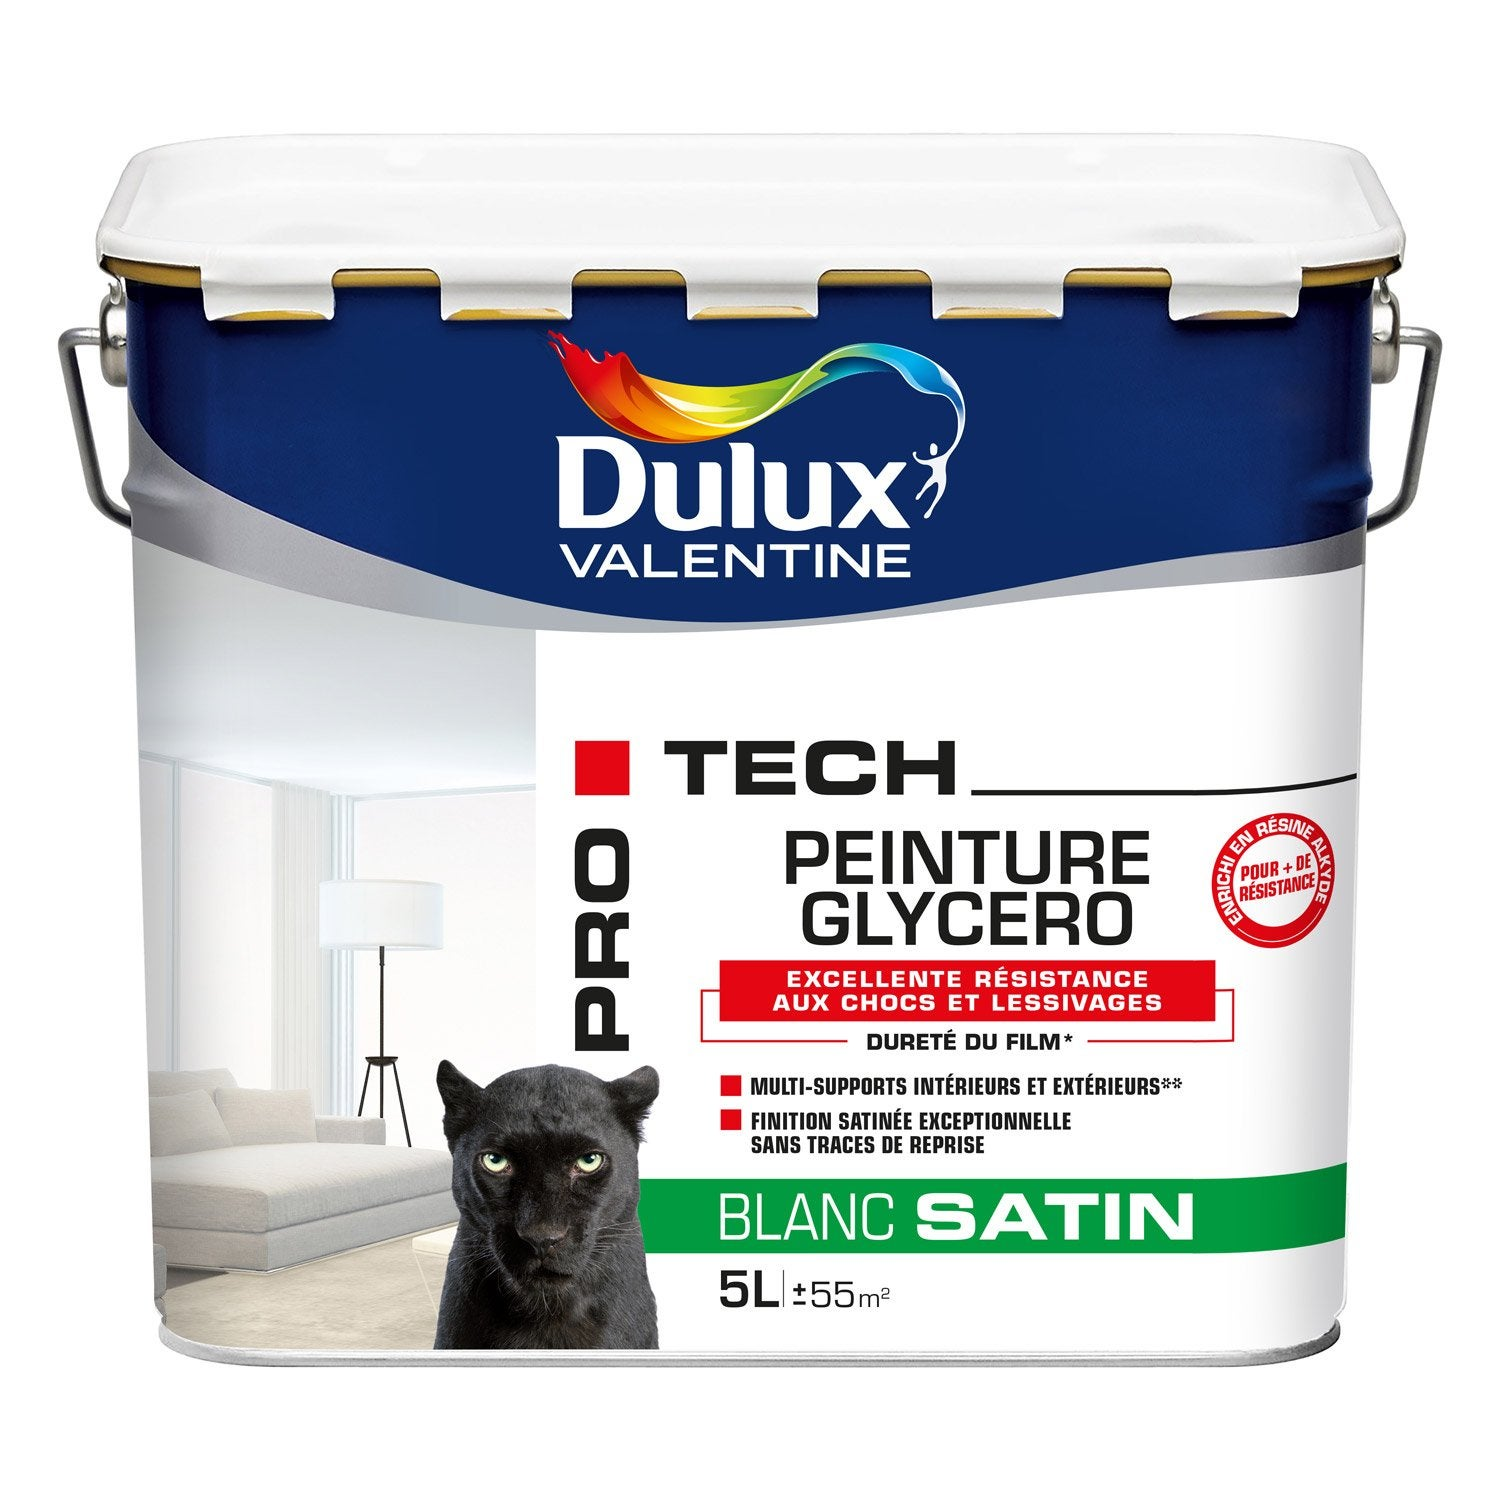 peinture blanche mur et plafond pro tech glycero dulux valentine satin 5 l leroy merlin. Black Bedroom Furniture Sets. Home Design Ideas